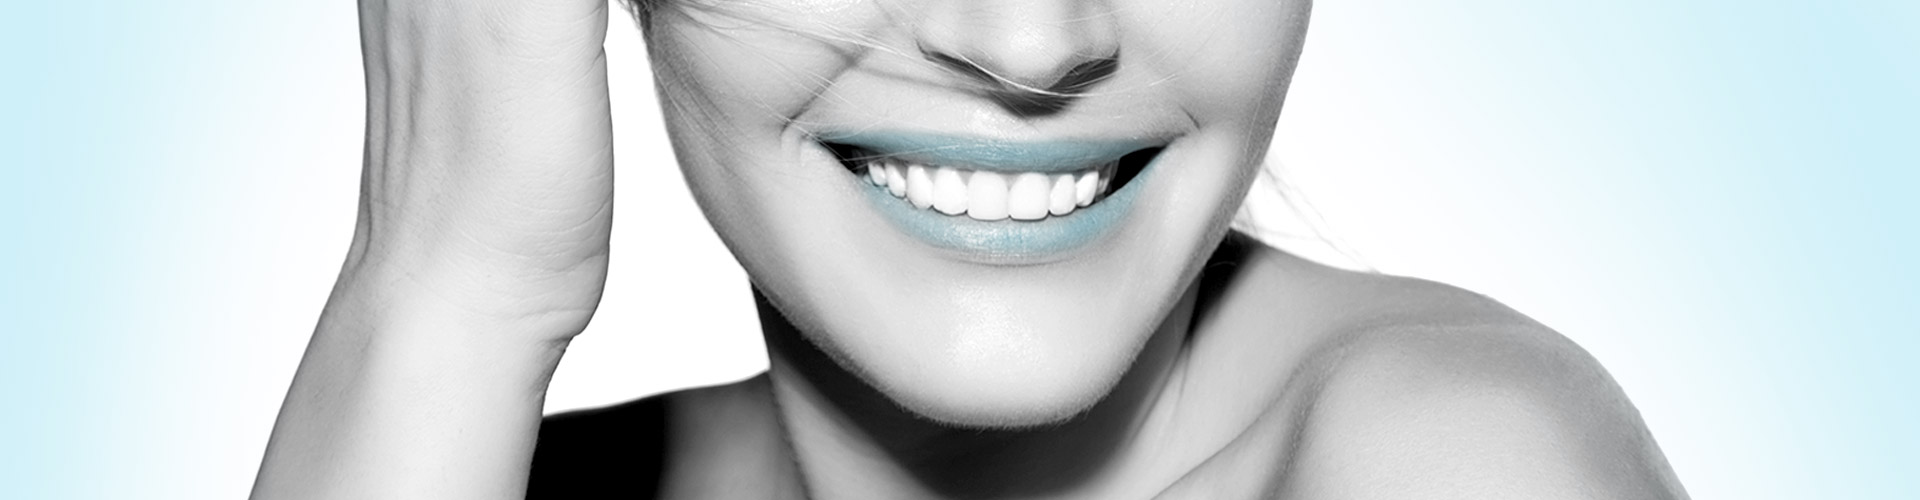 Services-teeth-whitening-banner